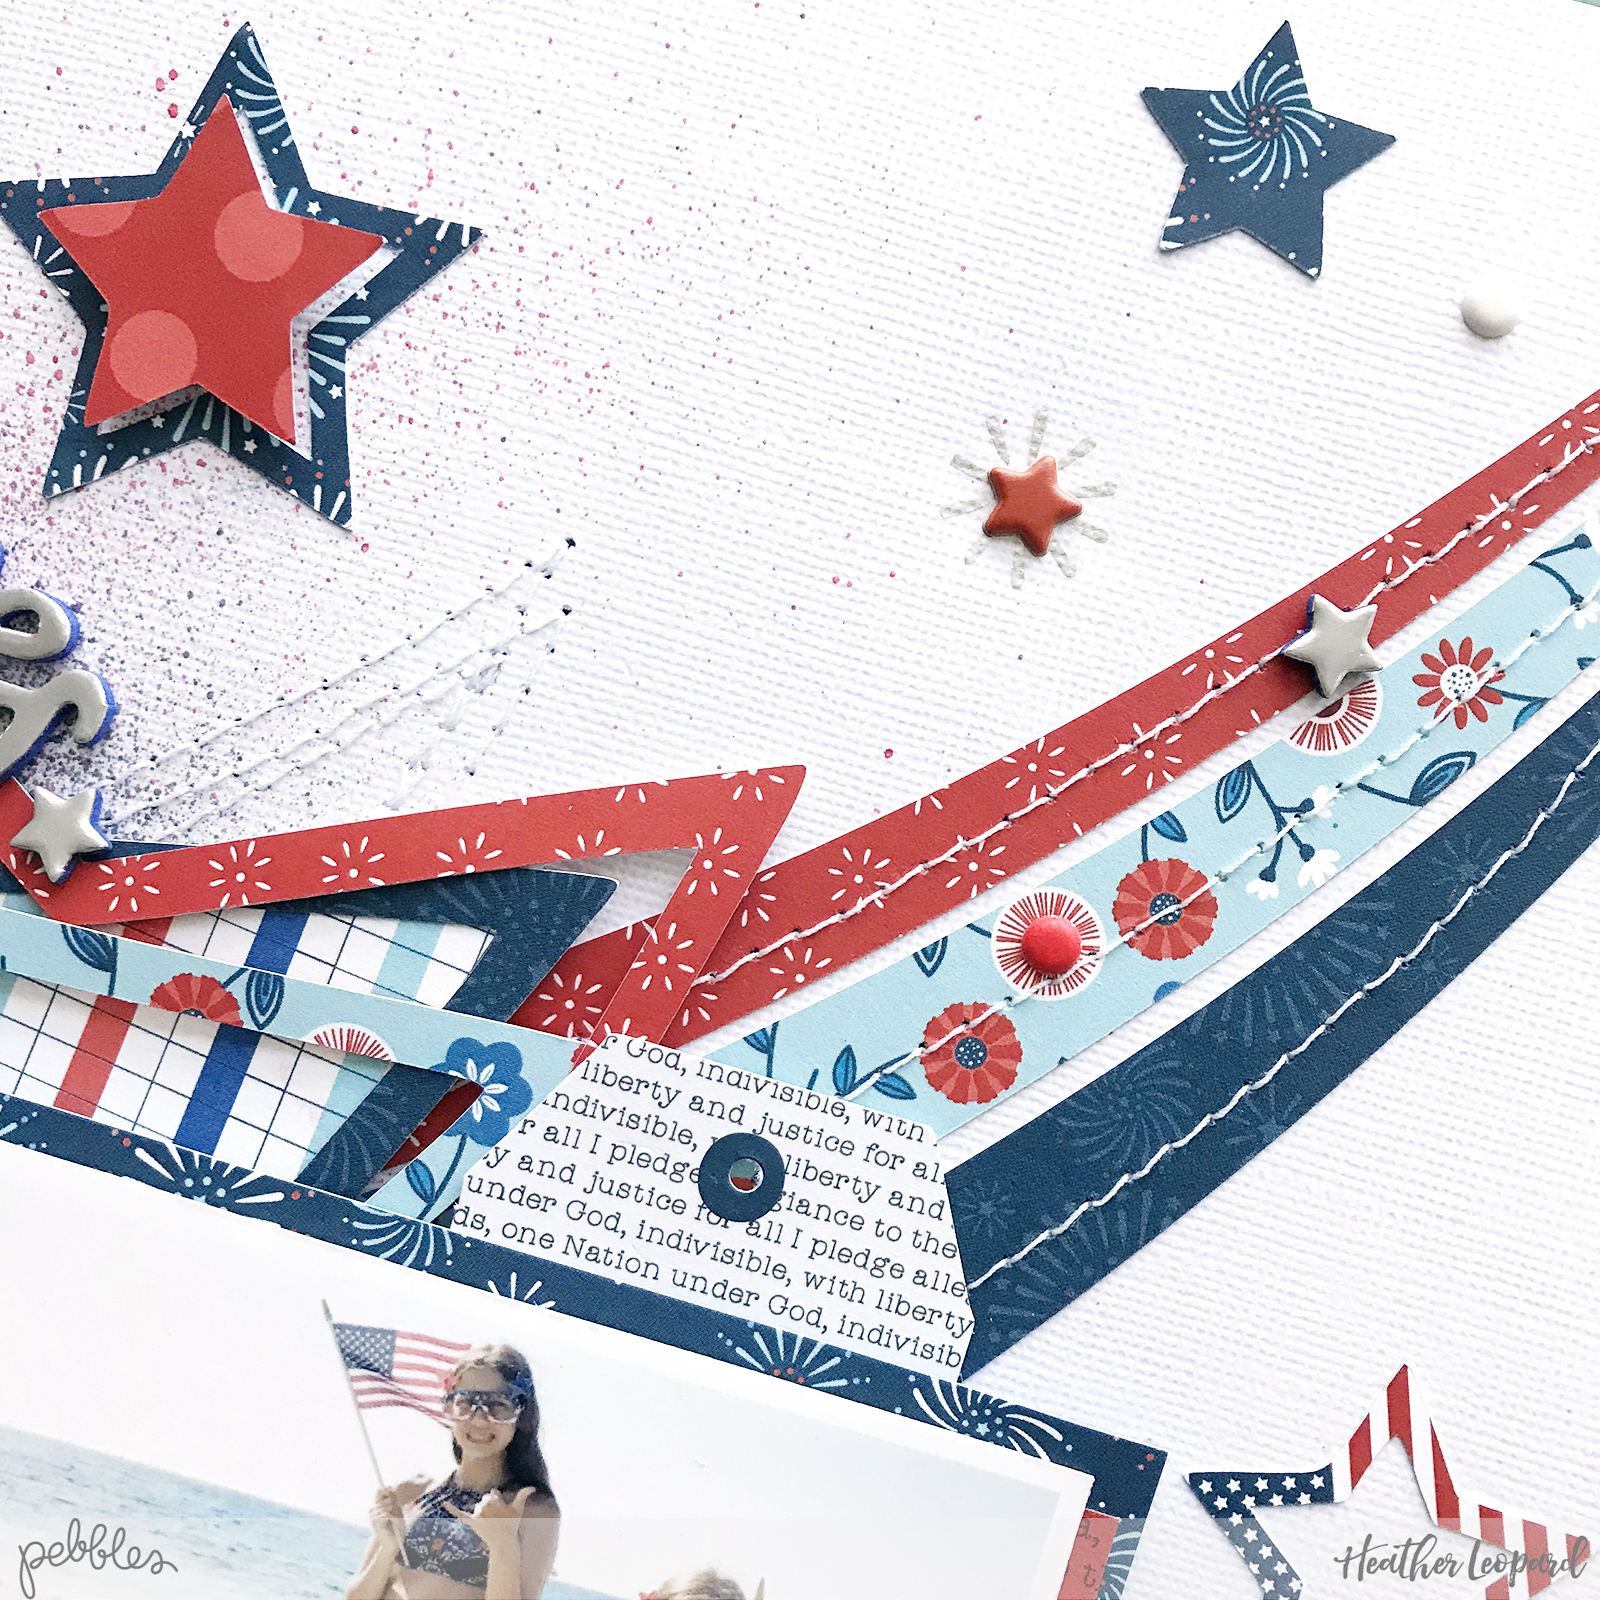 Stars and Stripes Scrapbooking Layout and Process Video by @heatherleopard using the @pebblesinc #LandThatILove collection #madewithpebbles #heatherleopard #fourthofjuly #patriotic #scrapbooking #scrapbook #starsandstripes #4thofjuly